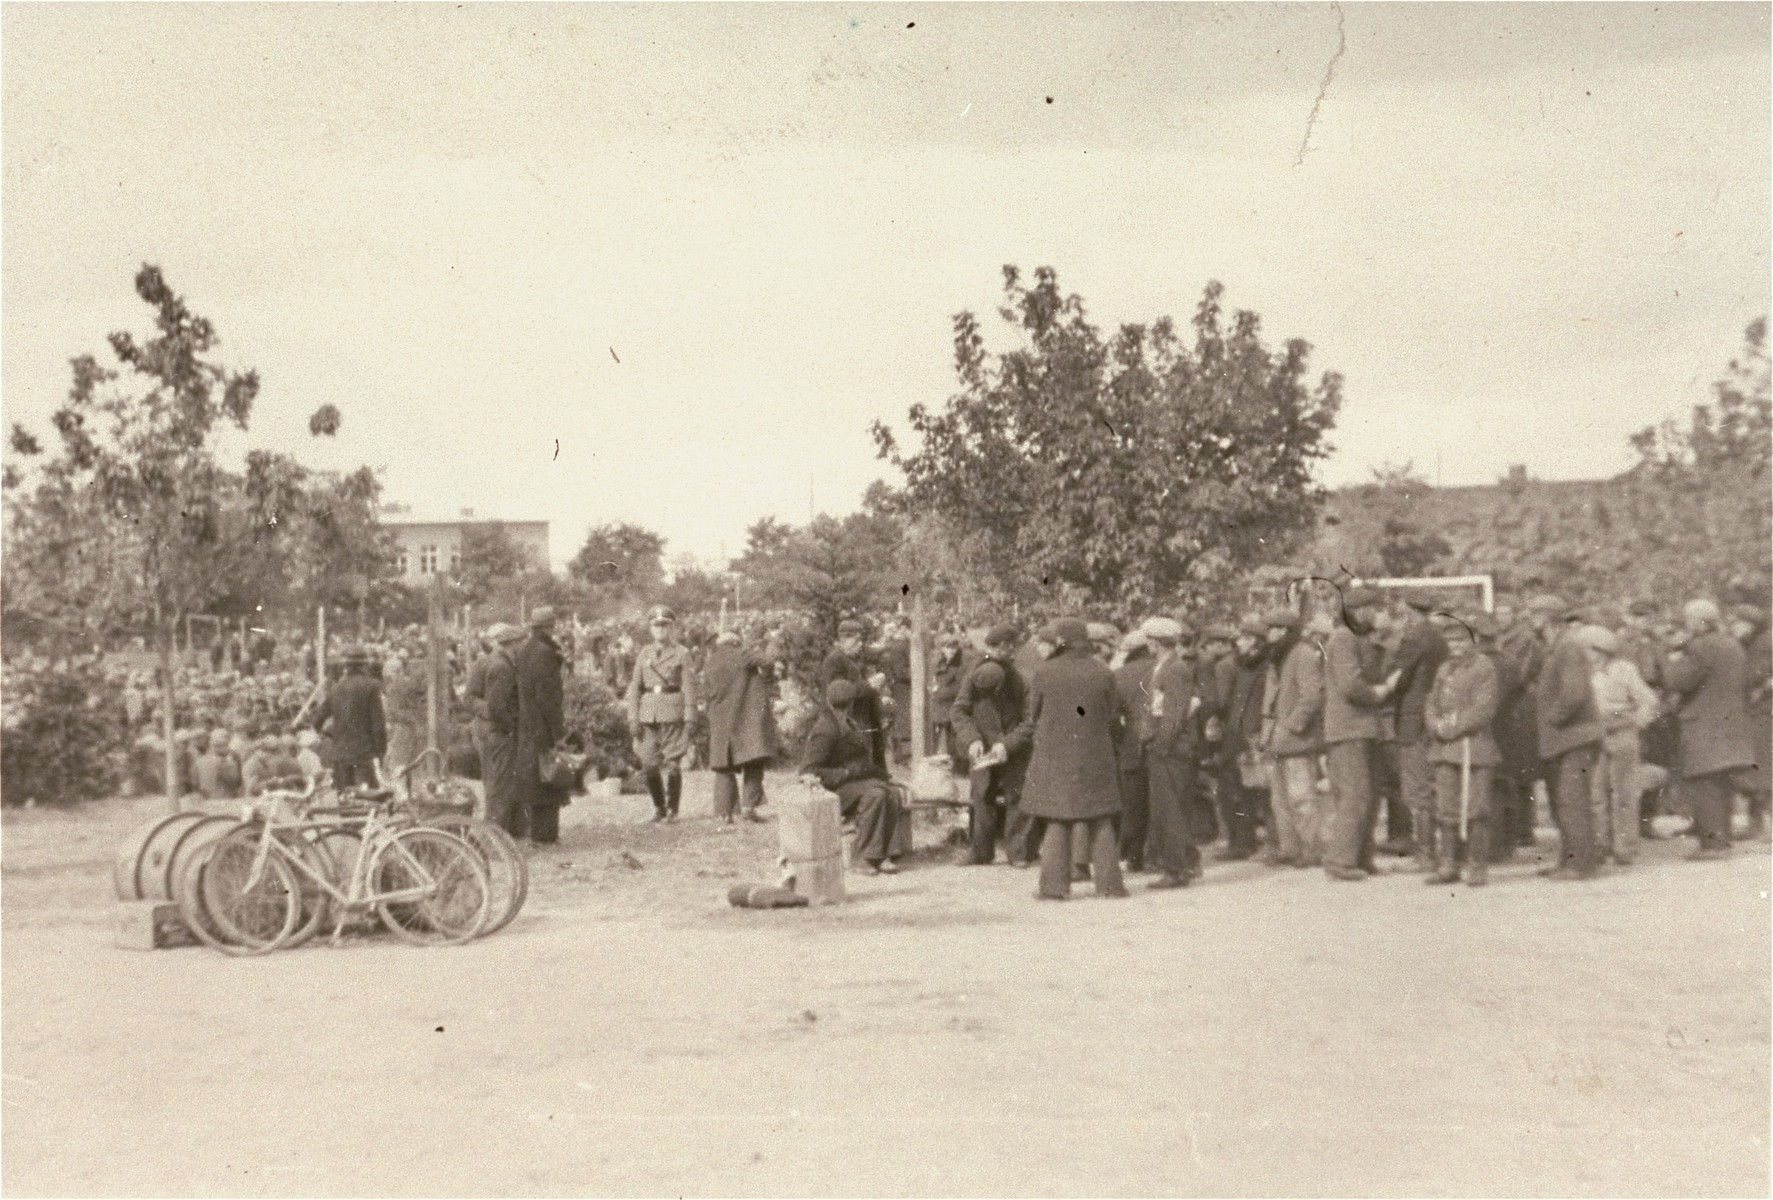 "[Probably, an SD officer walking among Polish and Jewish civilians interned in a temporary holding center.]  These prisoners may be what the Germans called ""Wehrfaehige"", or persons capable of carrying arms, who were summarily interned during and immediately after the Polish campaign as a security measure.   One of twenty-six images of Einsatzgruppen activities in Poland in 1939, found by Joseph Igra after the war, in a an album in an apartment in Sosnowiec."